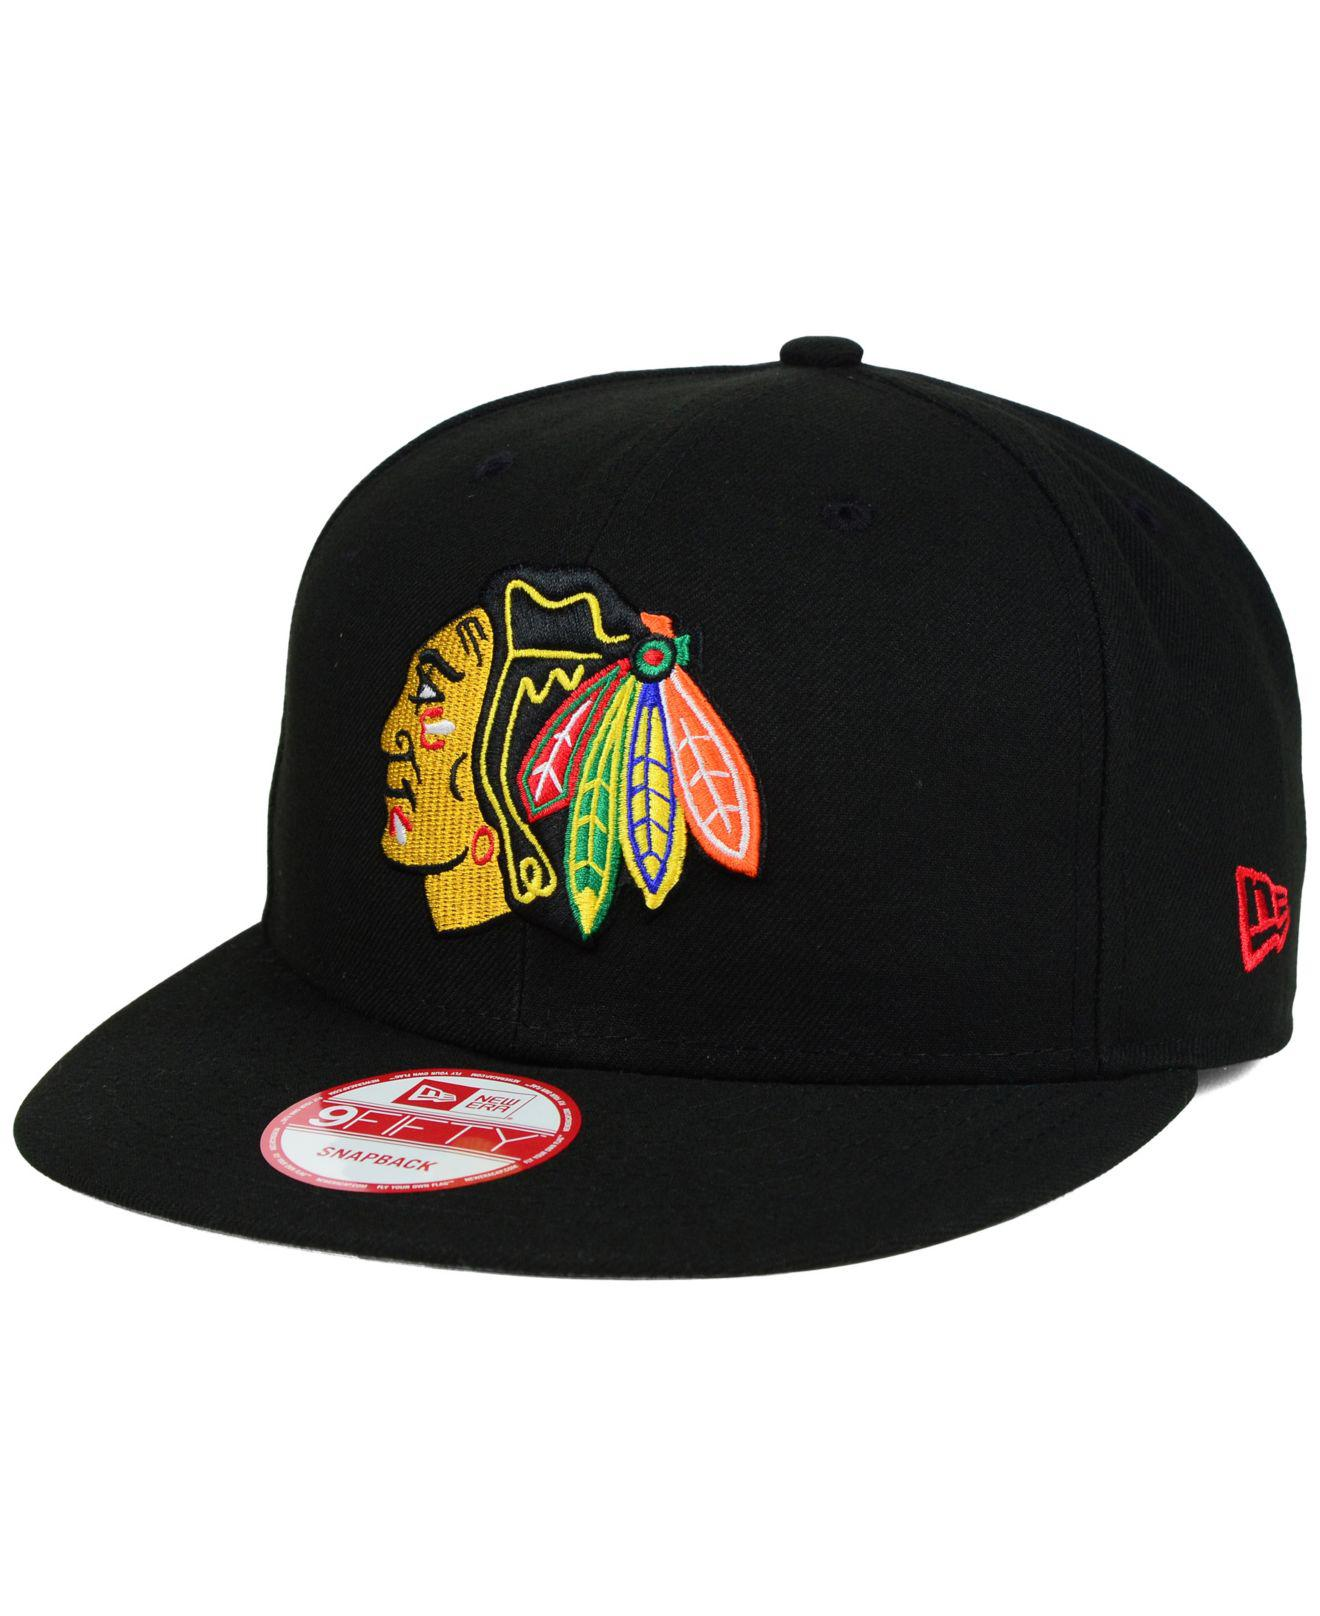 7b2f565c4ab ... hot ktz chicago blackhawks all day 9fifty snapback cap for men lyst.  view fullscreen e6f98